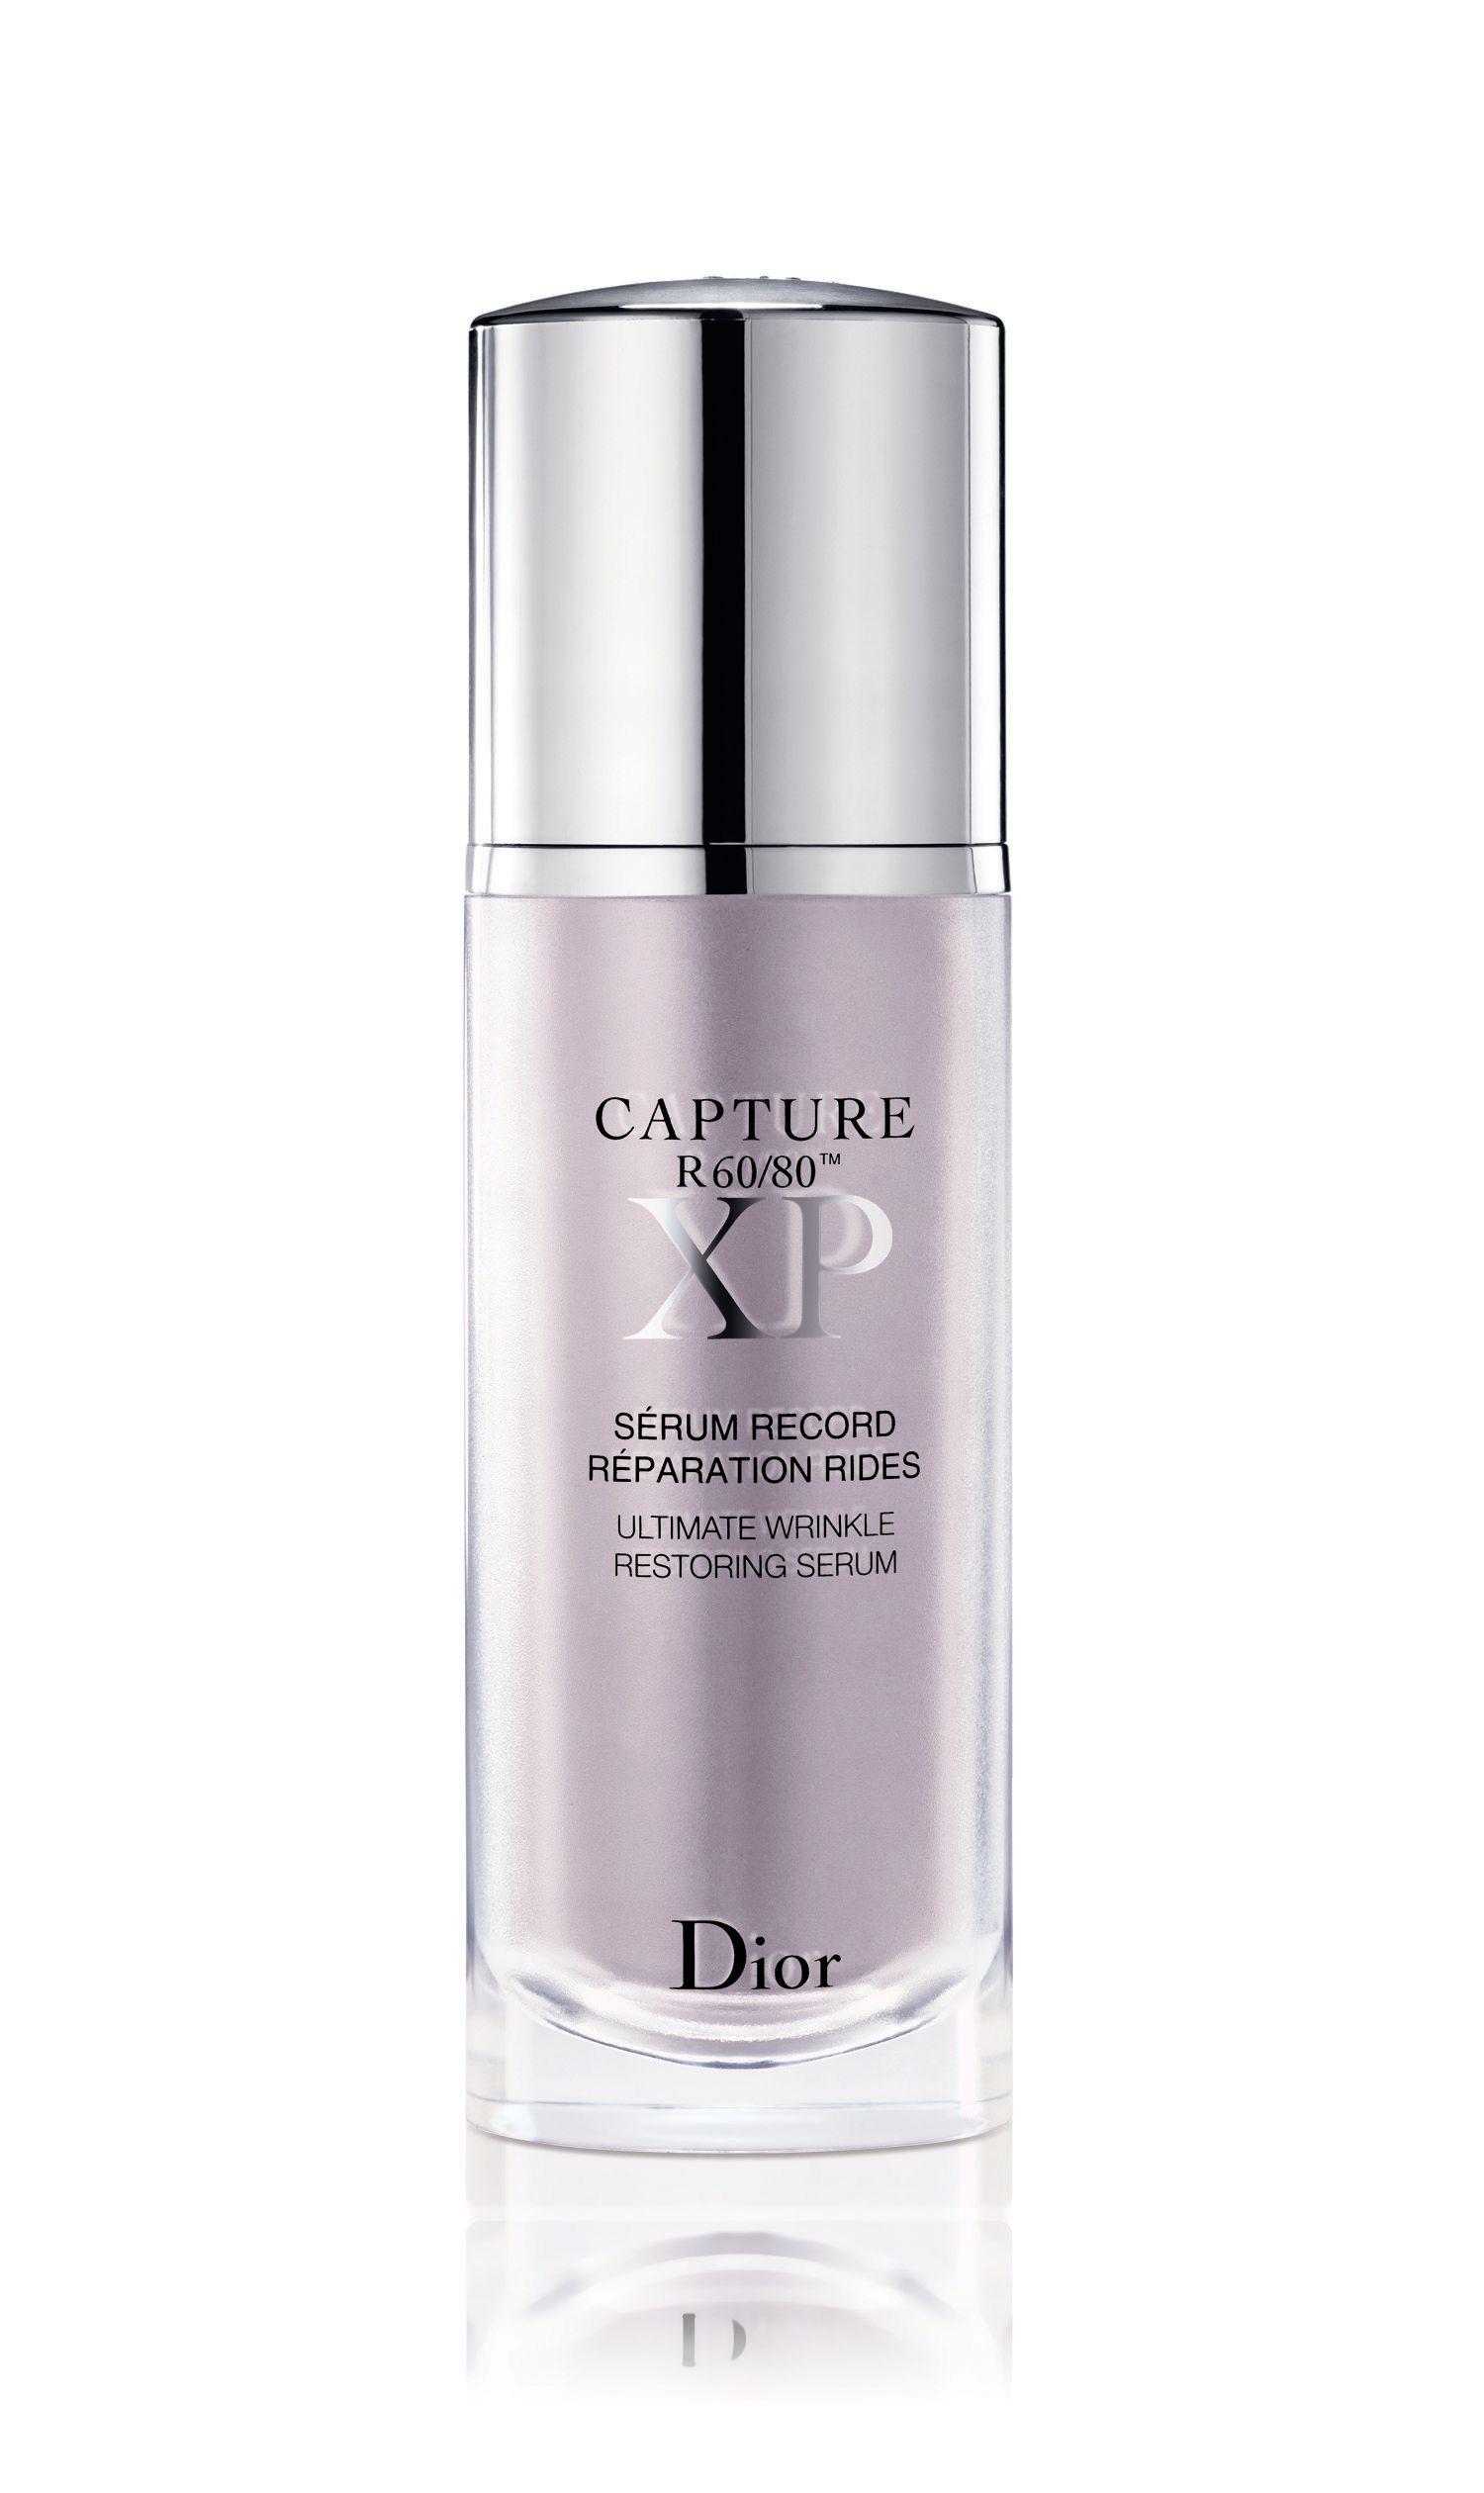 dior capture r60 80 xp serum 50ml review compare prices buy online. Black Bedroom Furniture Sets. Home Design Ideas